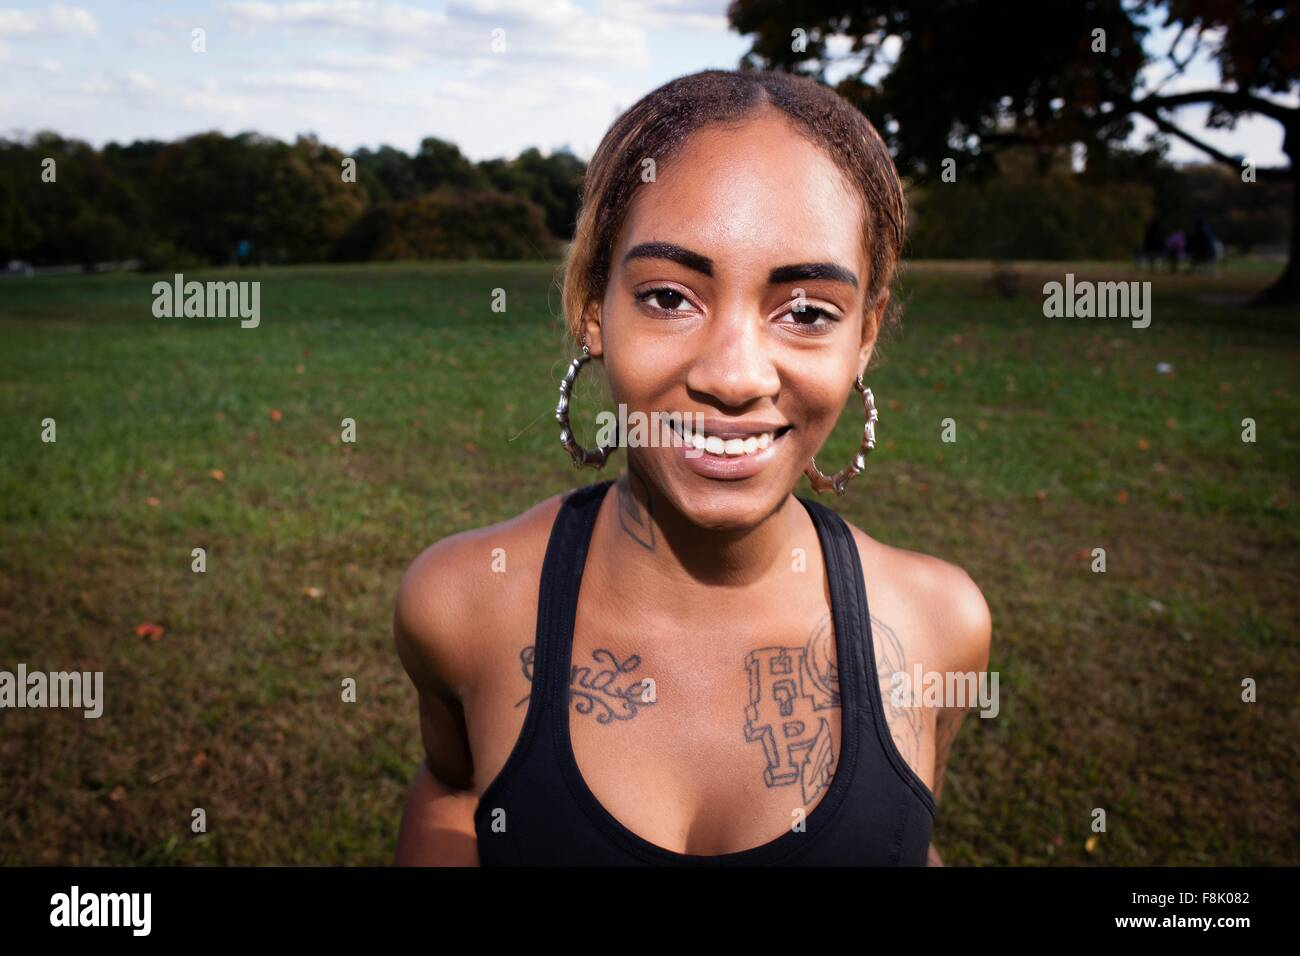 Young tattooed woman wearing crop top and hoop earrings, looking at camera smiling - Stock Image